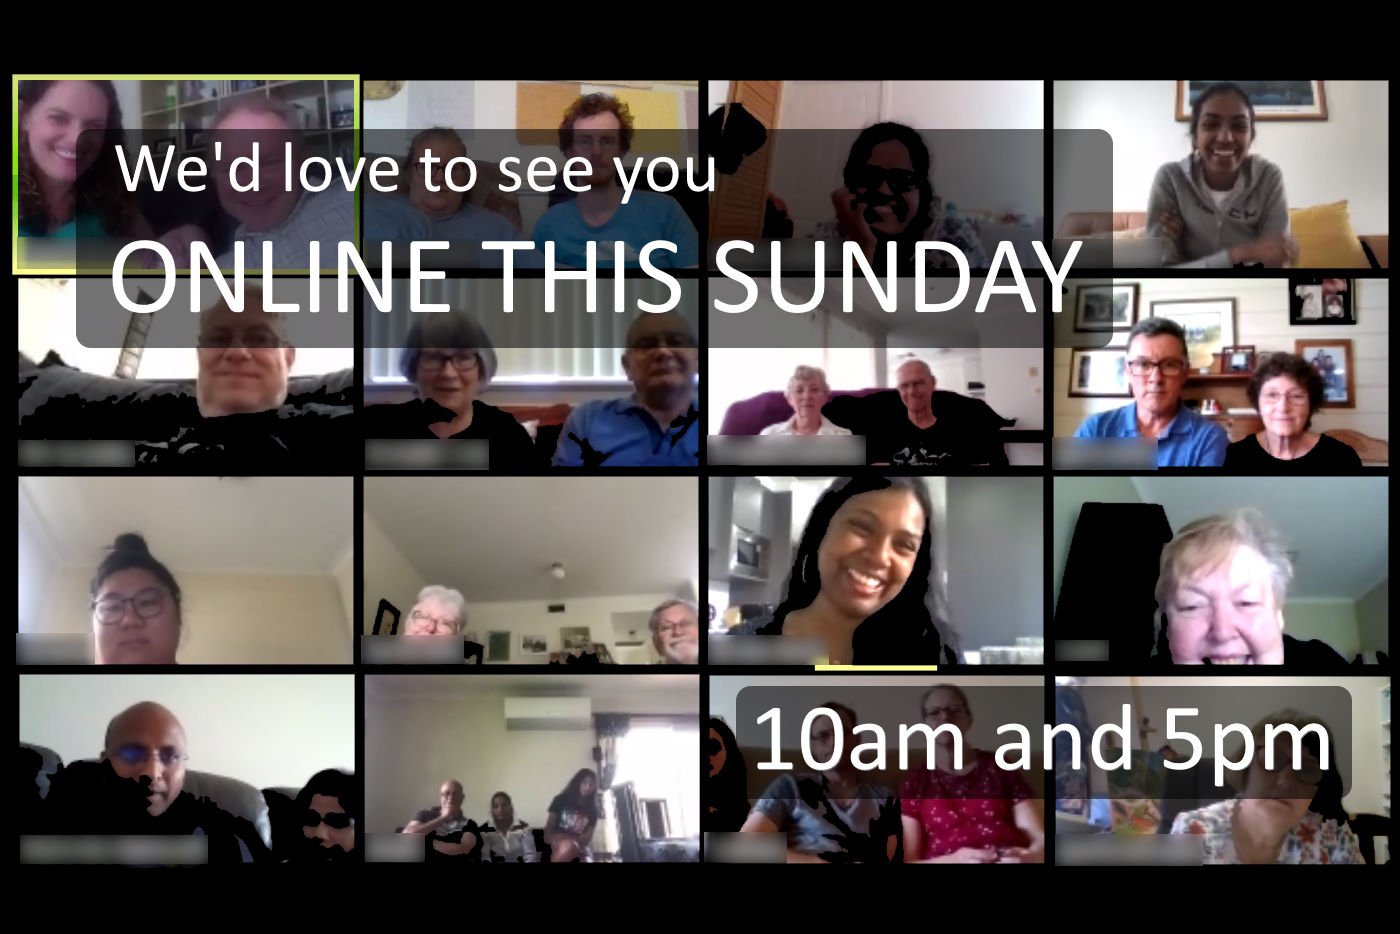 We'd love to see you Online this Sunday. 10am or 6pm.